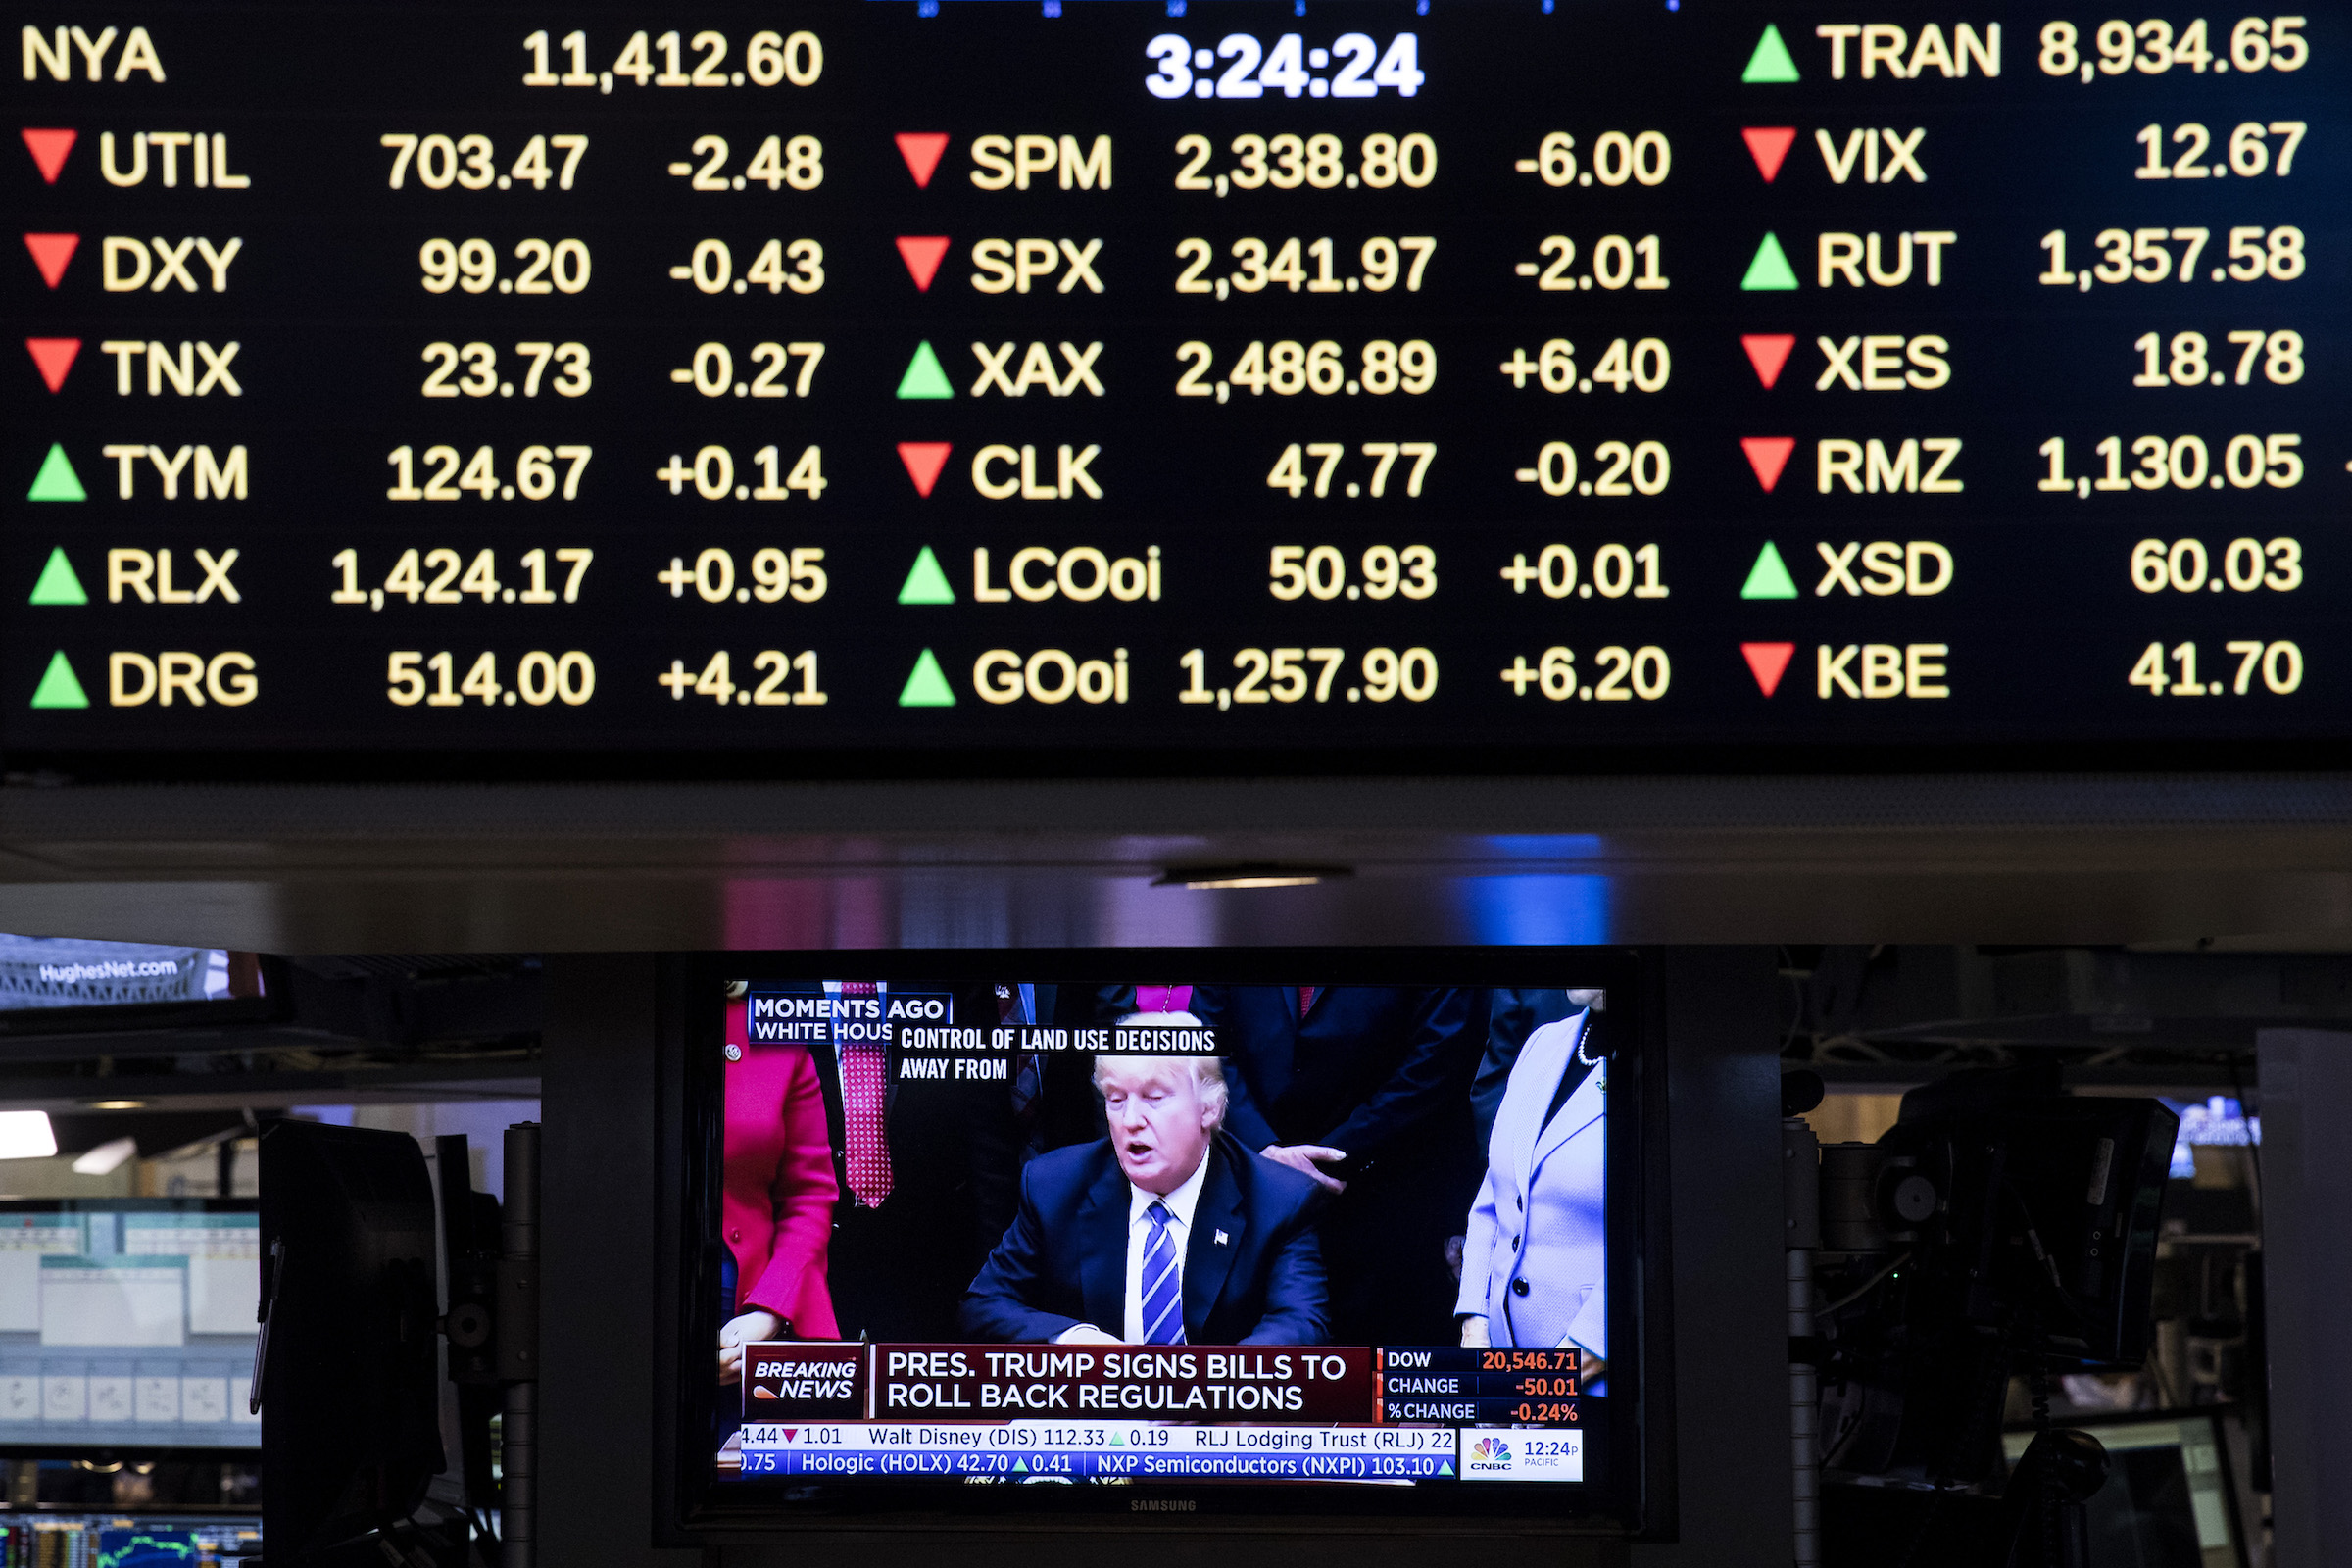 A television monitor shows President Donald Trump after he signed four bills that reverse Obama-era regulations and rules on education, land use and federal purchasing, on the floor of the New York Stock Exchange on March 27, 2017 in New York City.